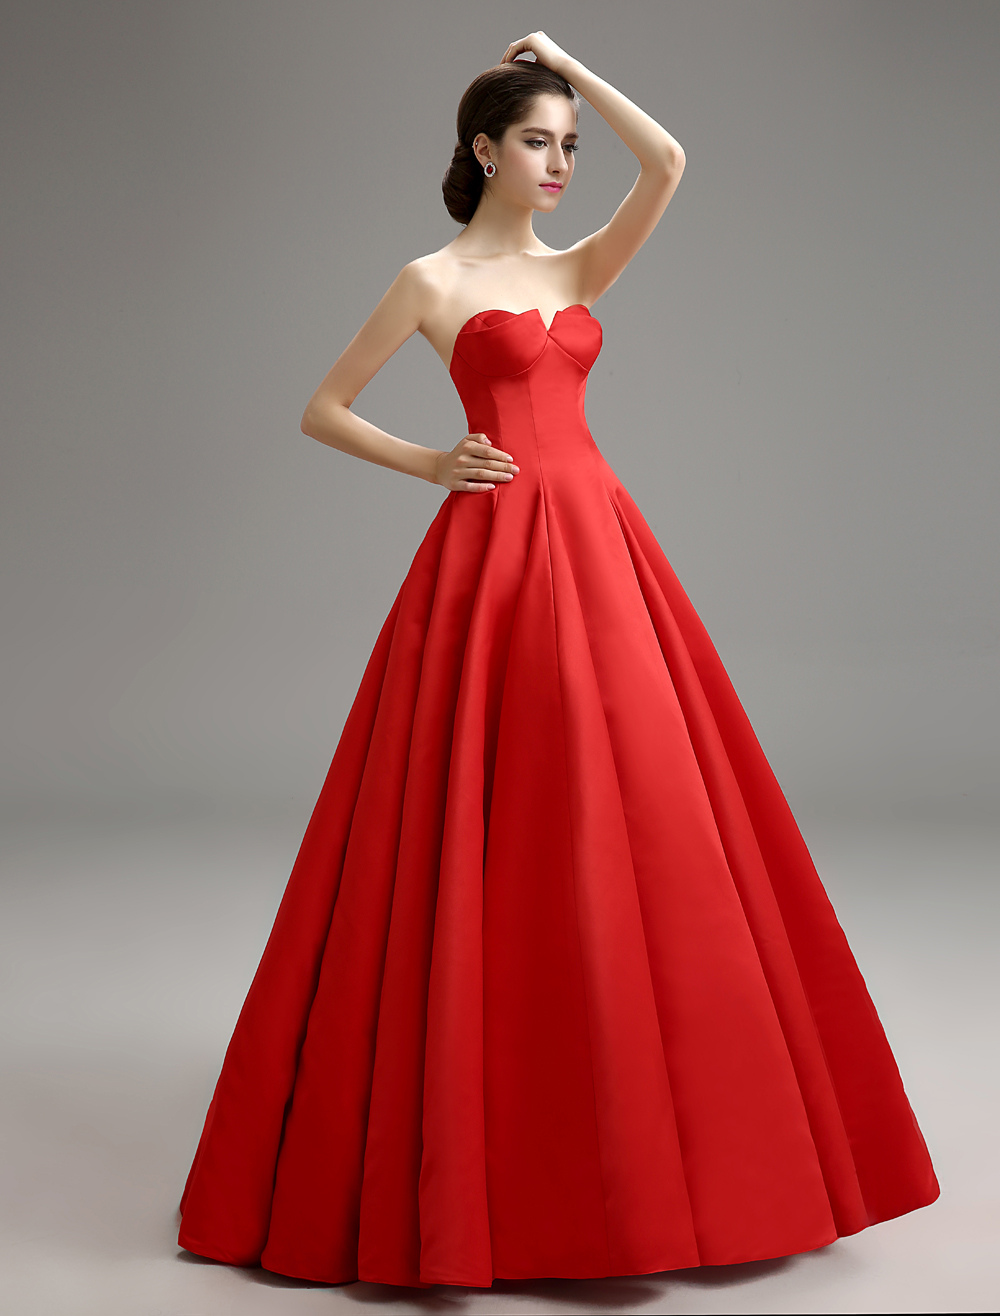 Red Vintage Strapless Pleated Ball Gown With Satin Milanoo (Wedding Prom Dresses) photo